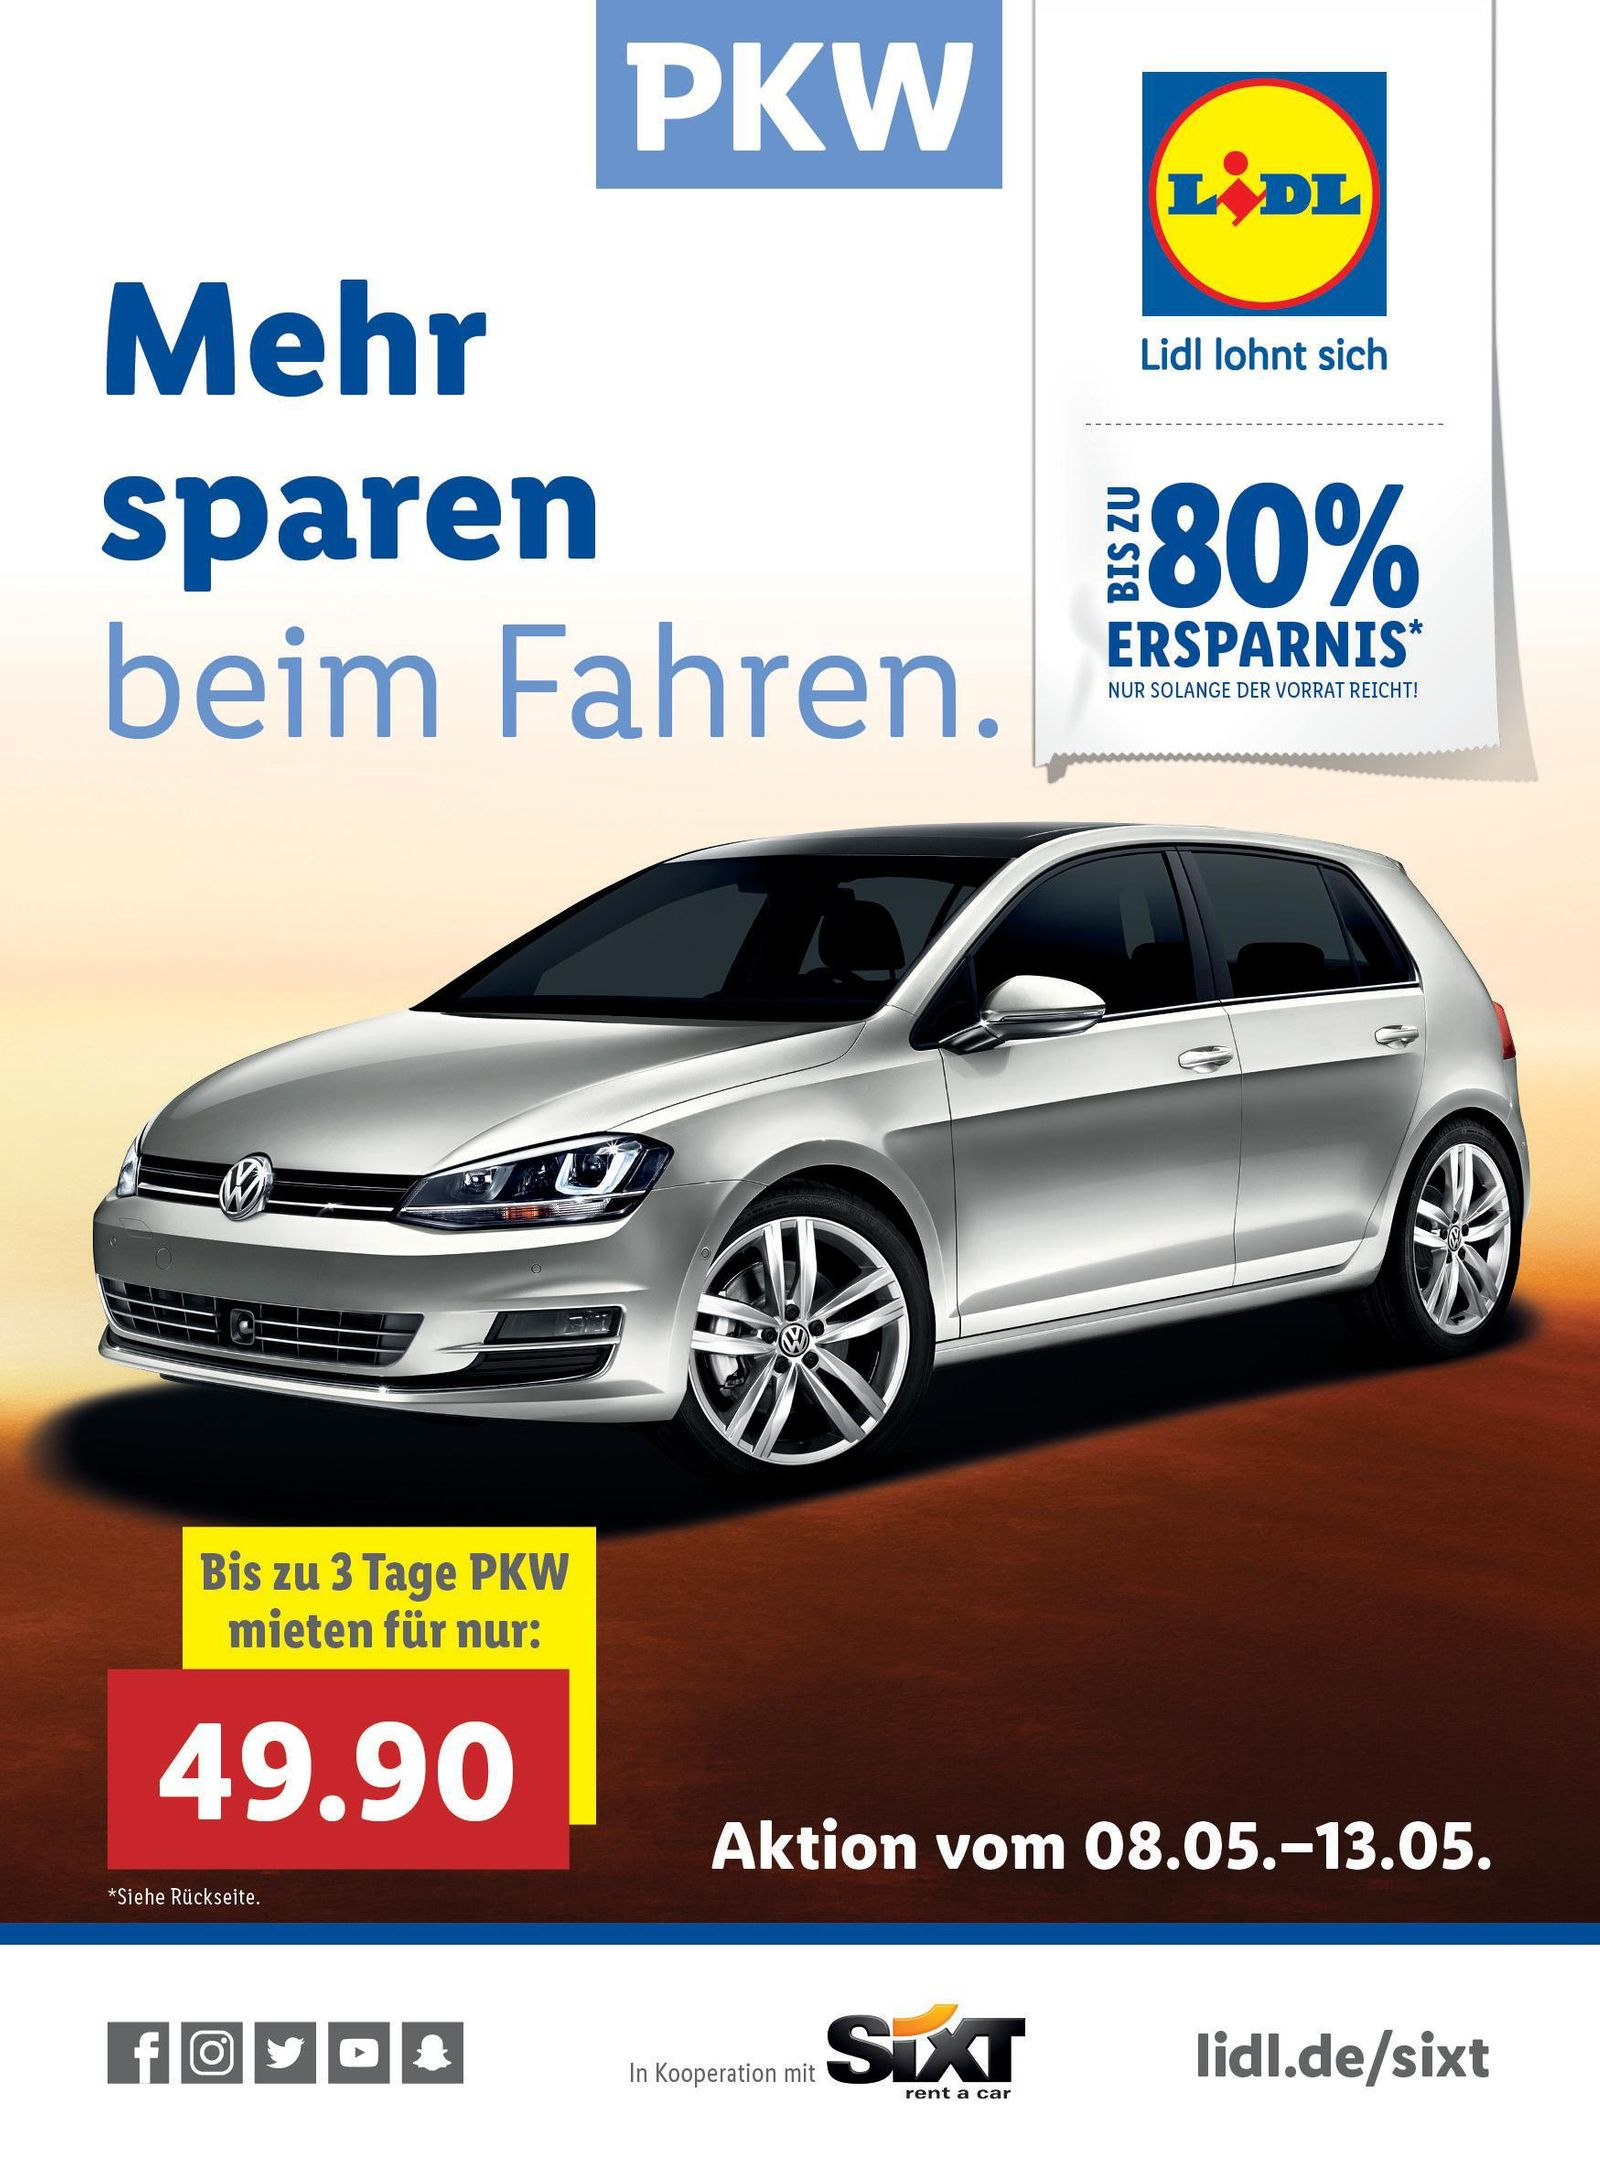 Anzeige Lidl / Sixt